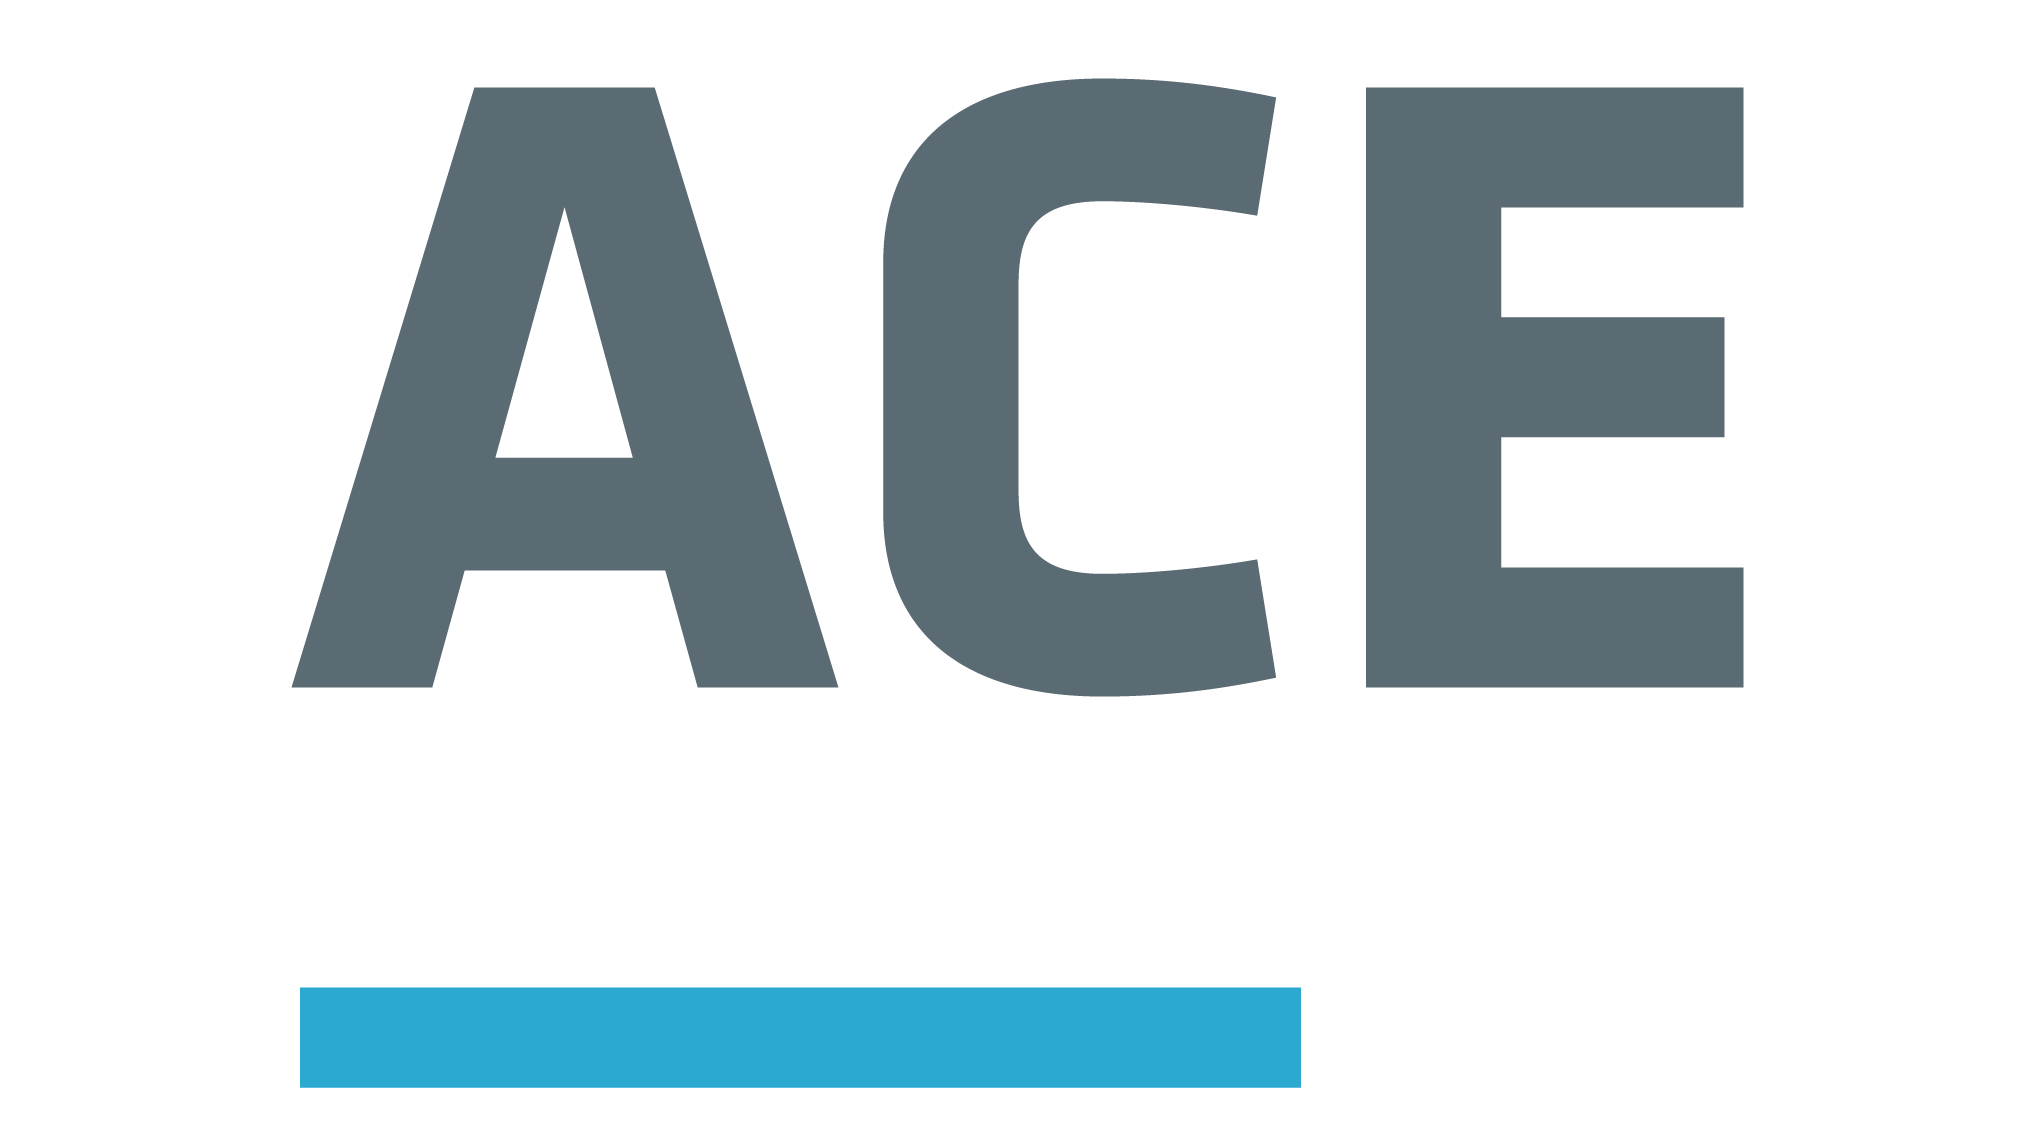 ACE (Adjustable Competence Evaluation) - image 0